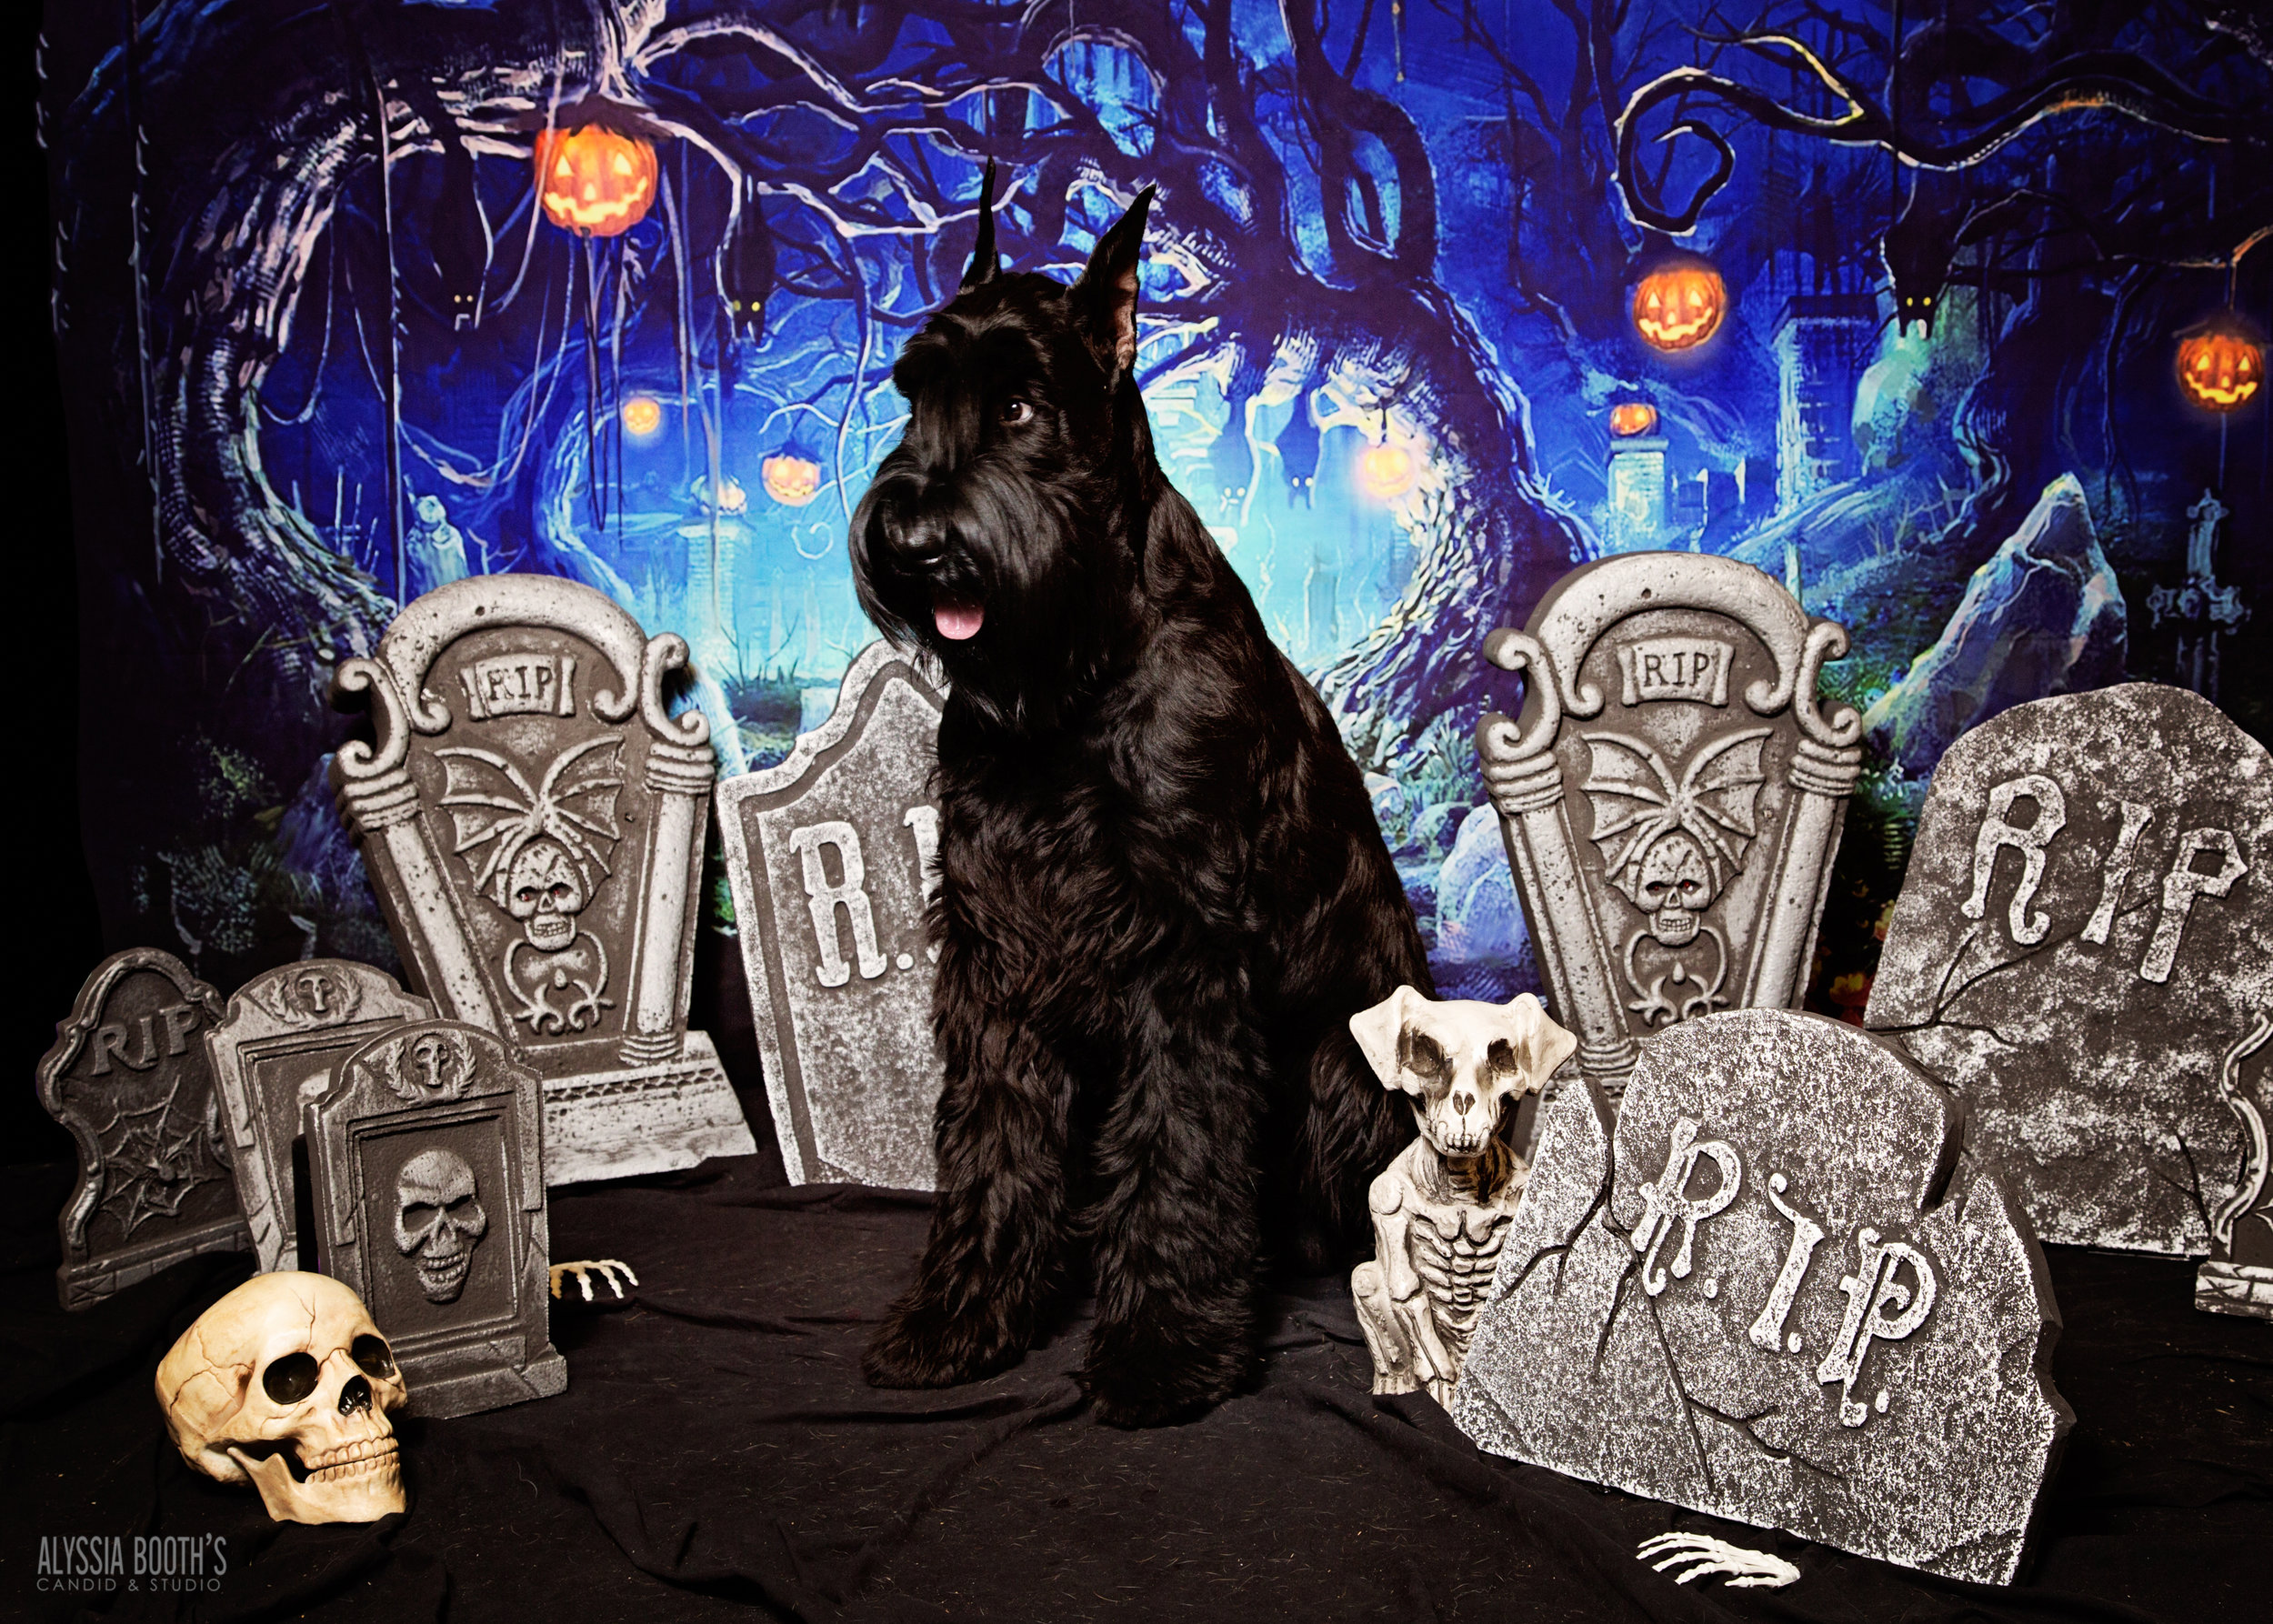 Giant Schnauzer | Big Black Dog | Halloween Pets |  www.abcandidstudio.com | Alyssia Booth's Candid & Studio | Michigan Pet Photographer